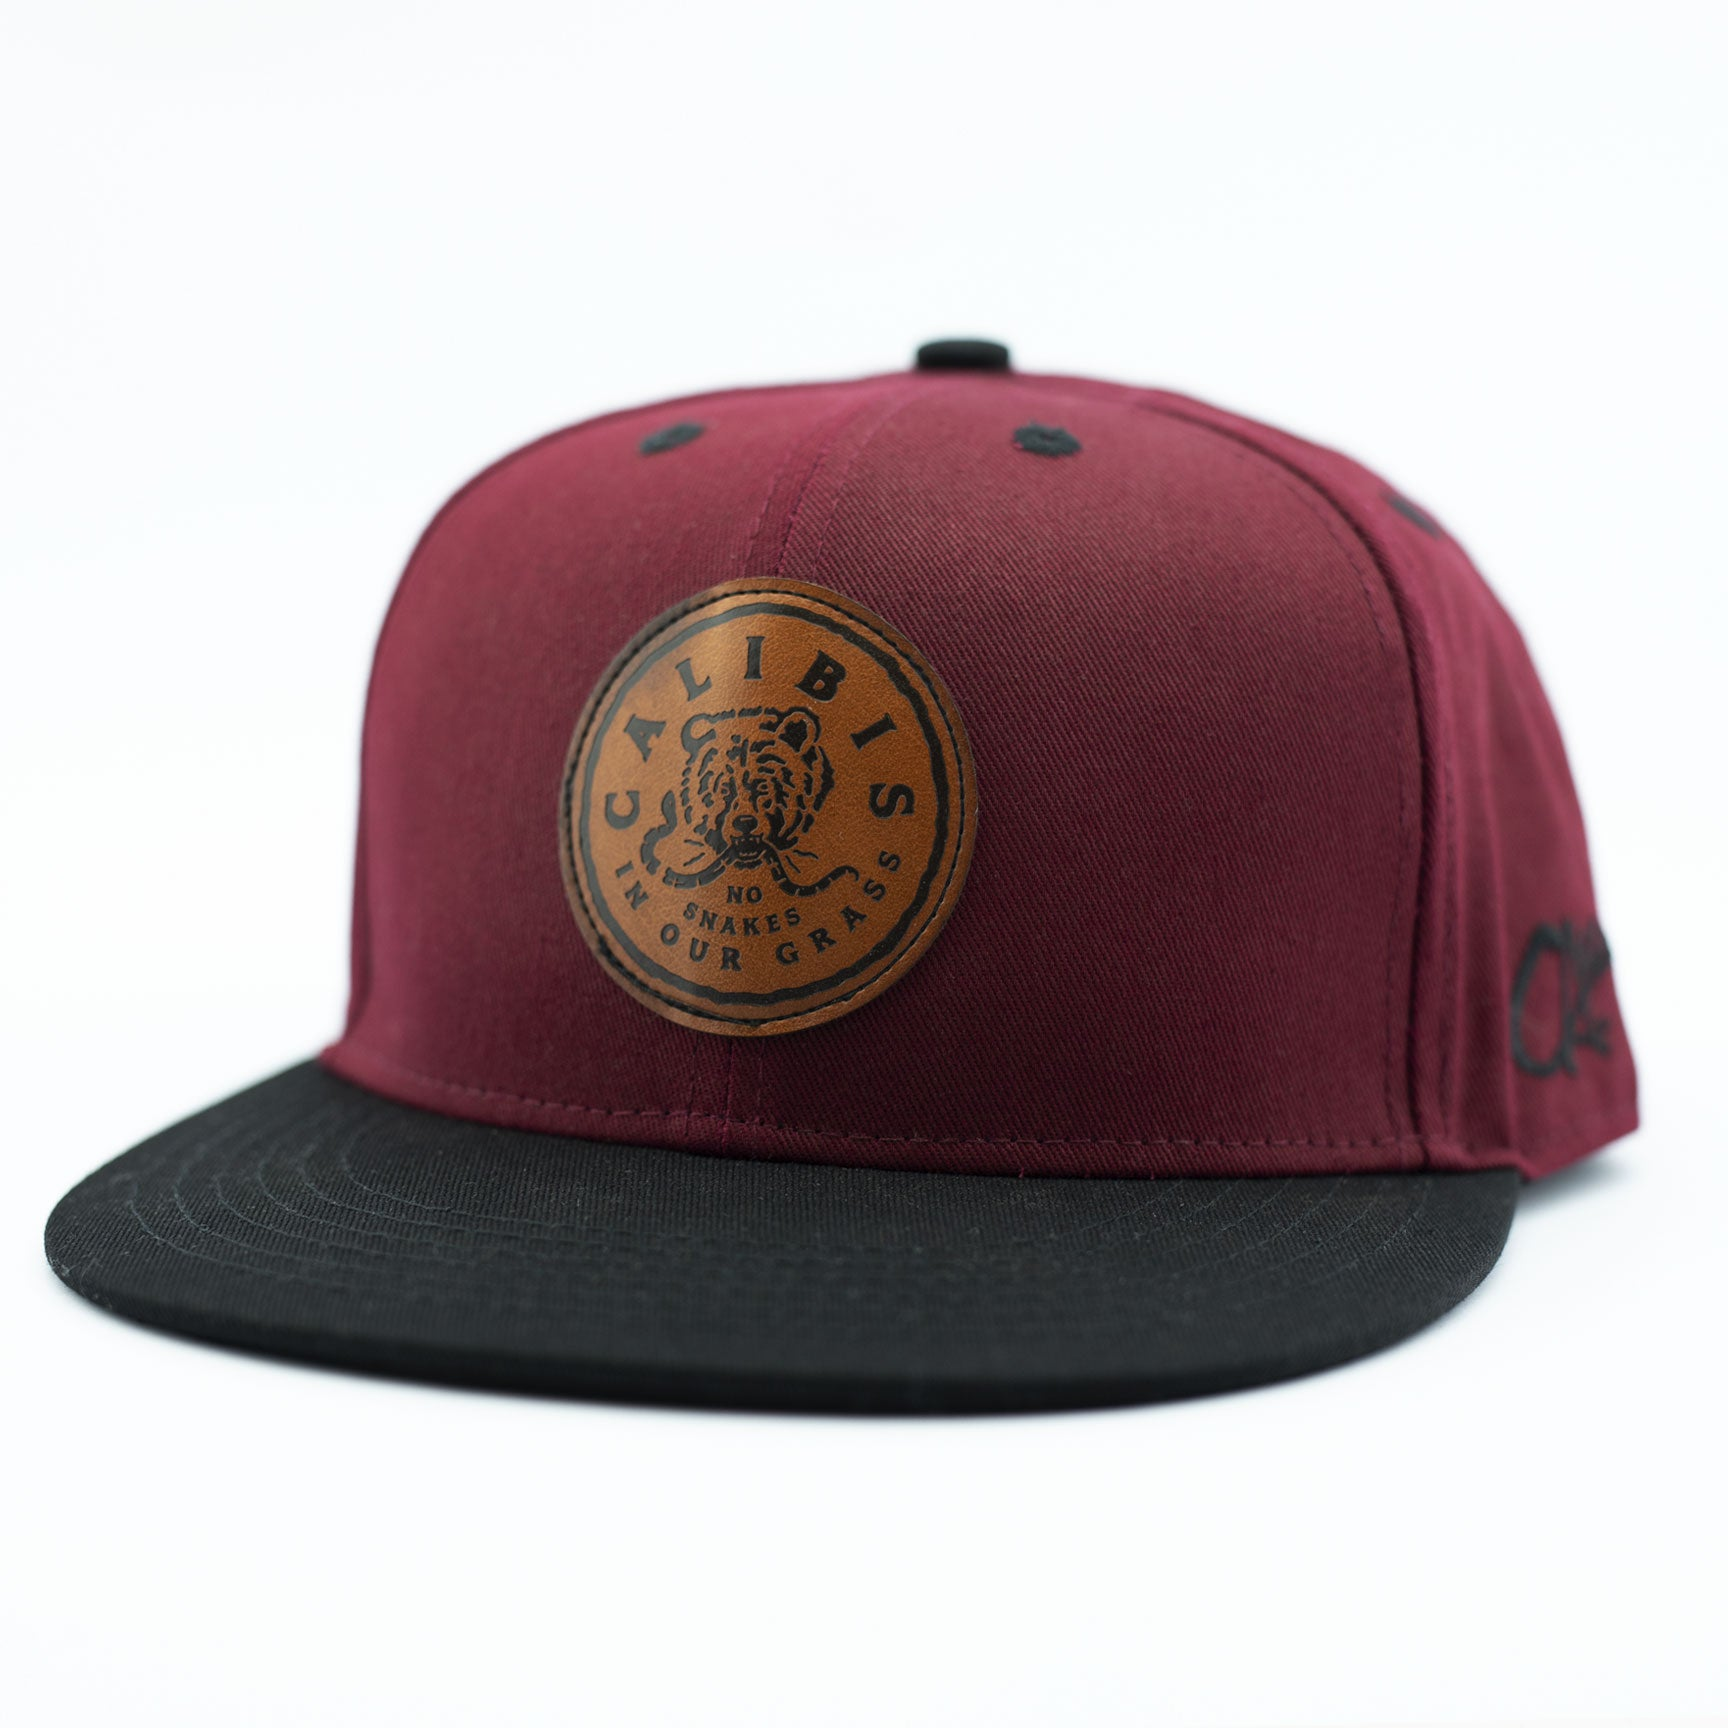 No Snakes Snapback by Calibis Clothing